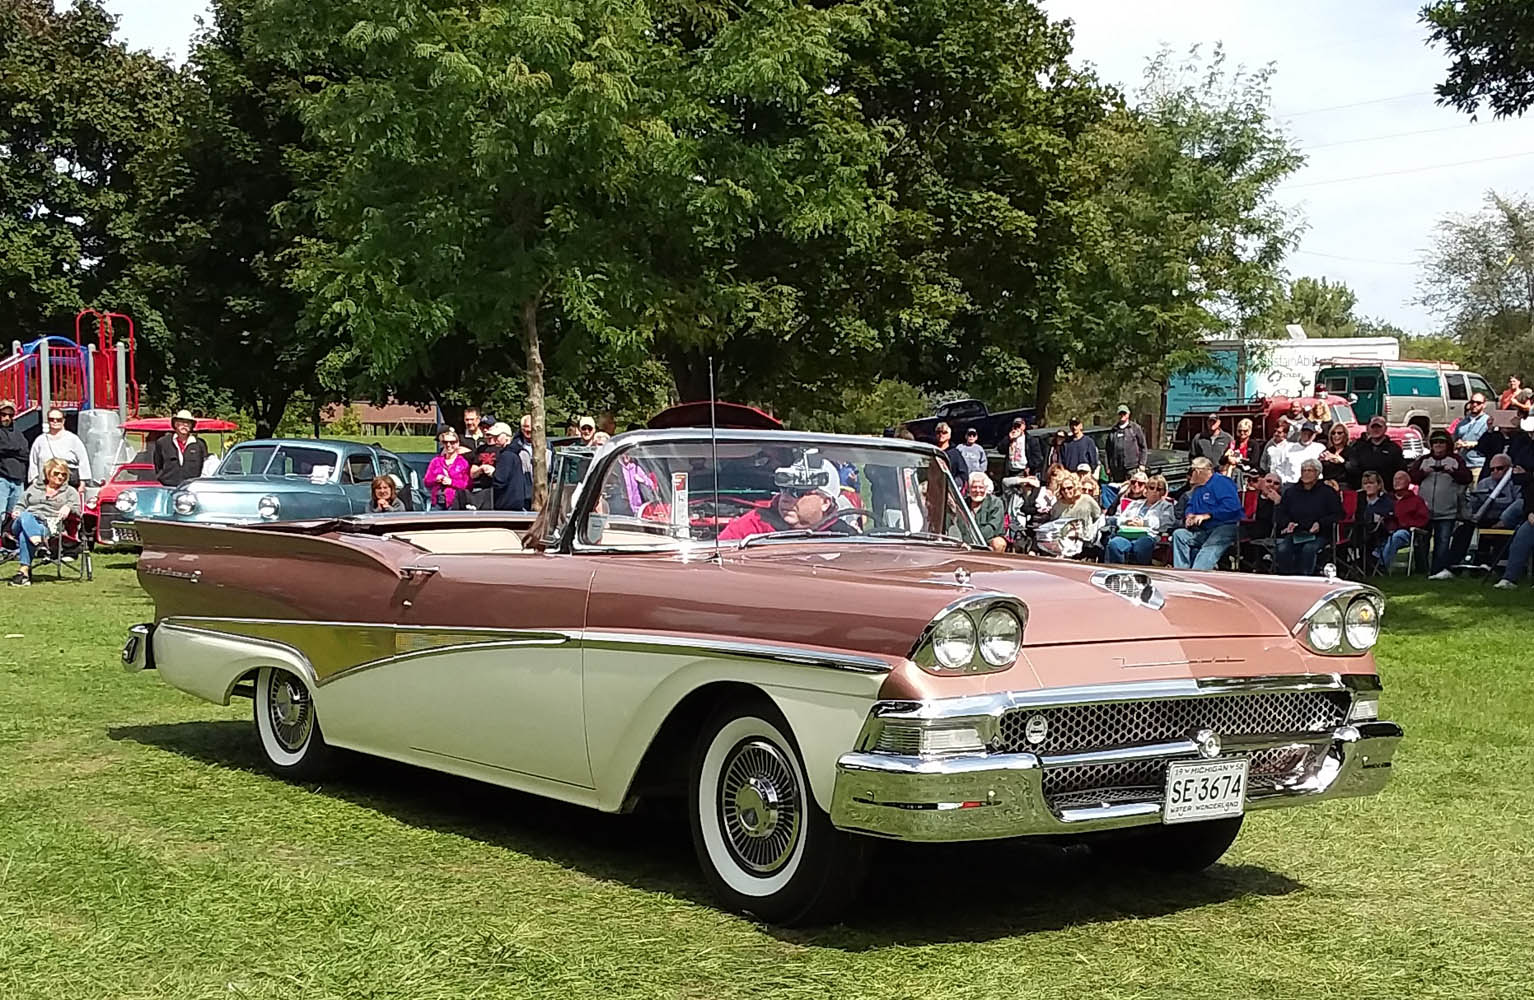 Top 25- 1958 Ford Skyliner, Brad Notter 1